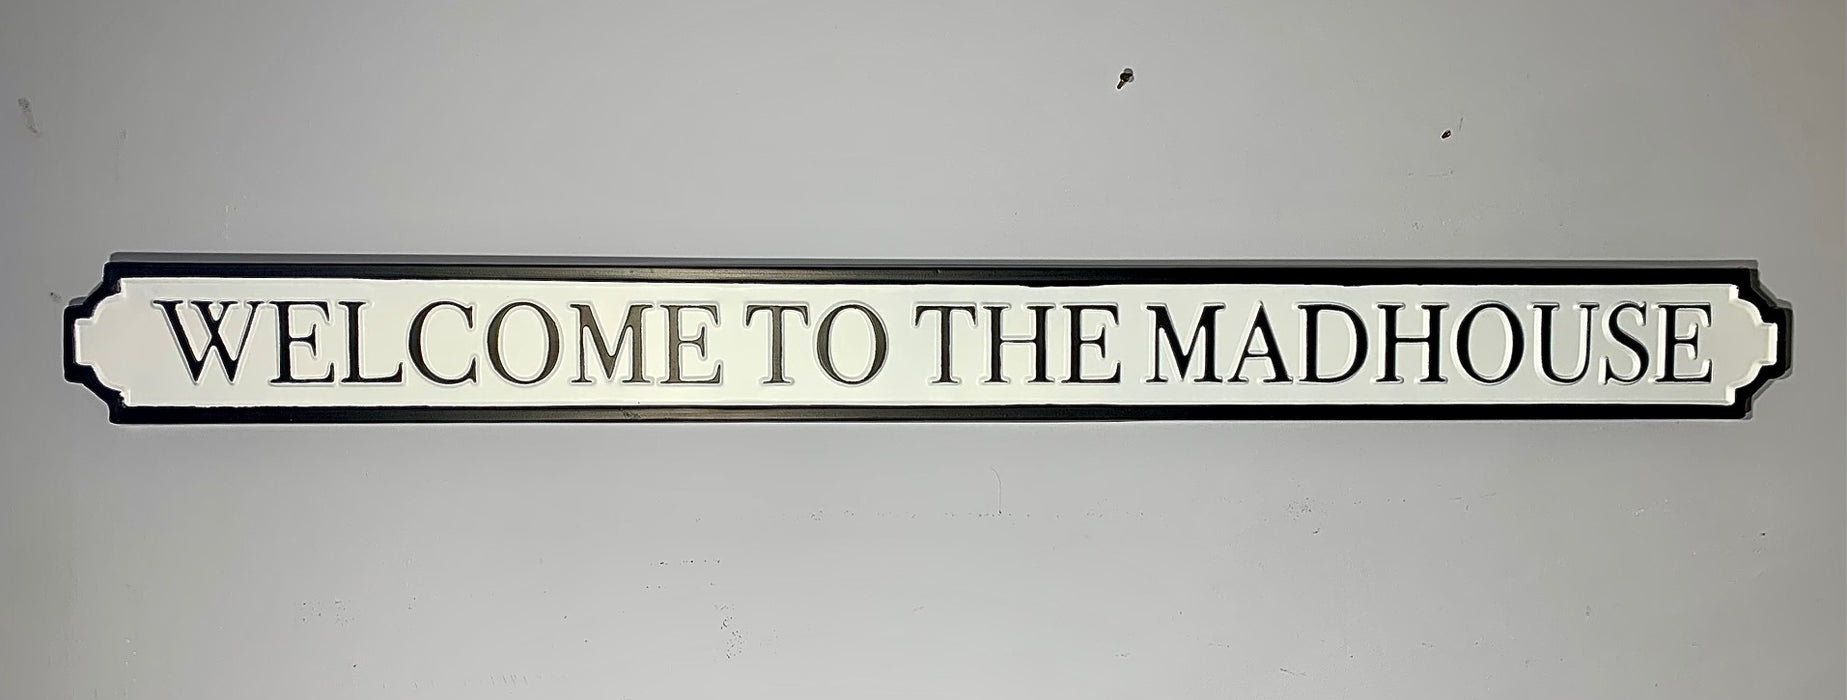 Welcome to the Madhouse - Metal Road Sign